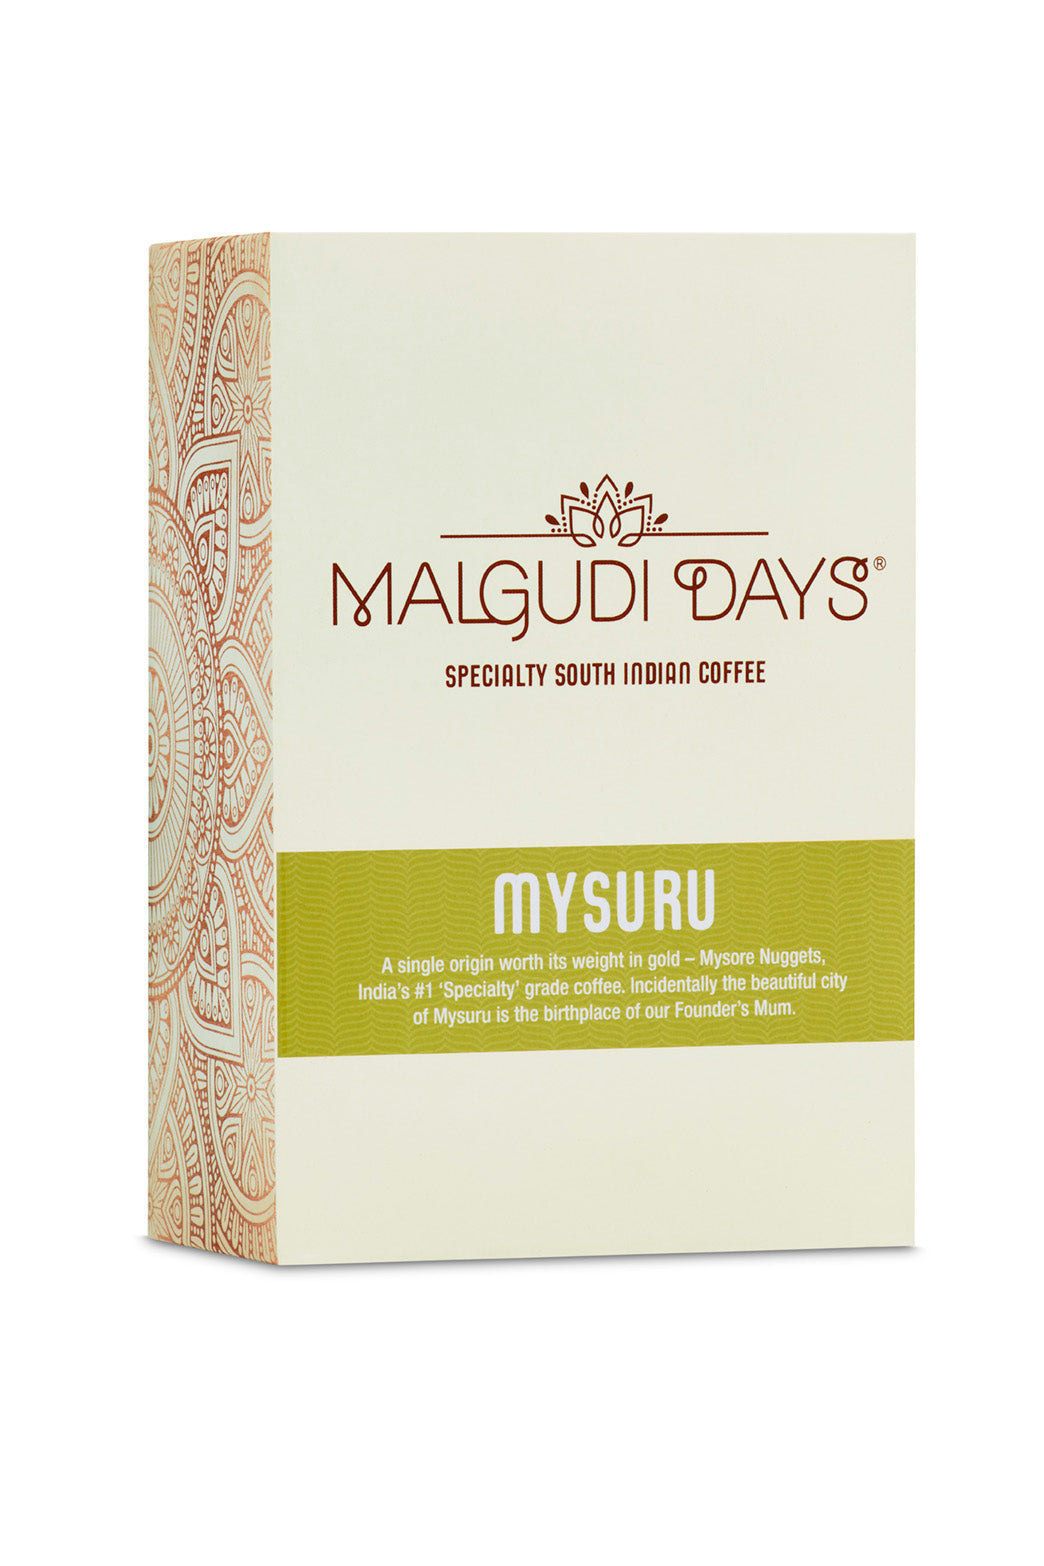 Mysuru Coffee - 225g - Malgudi Days